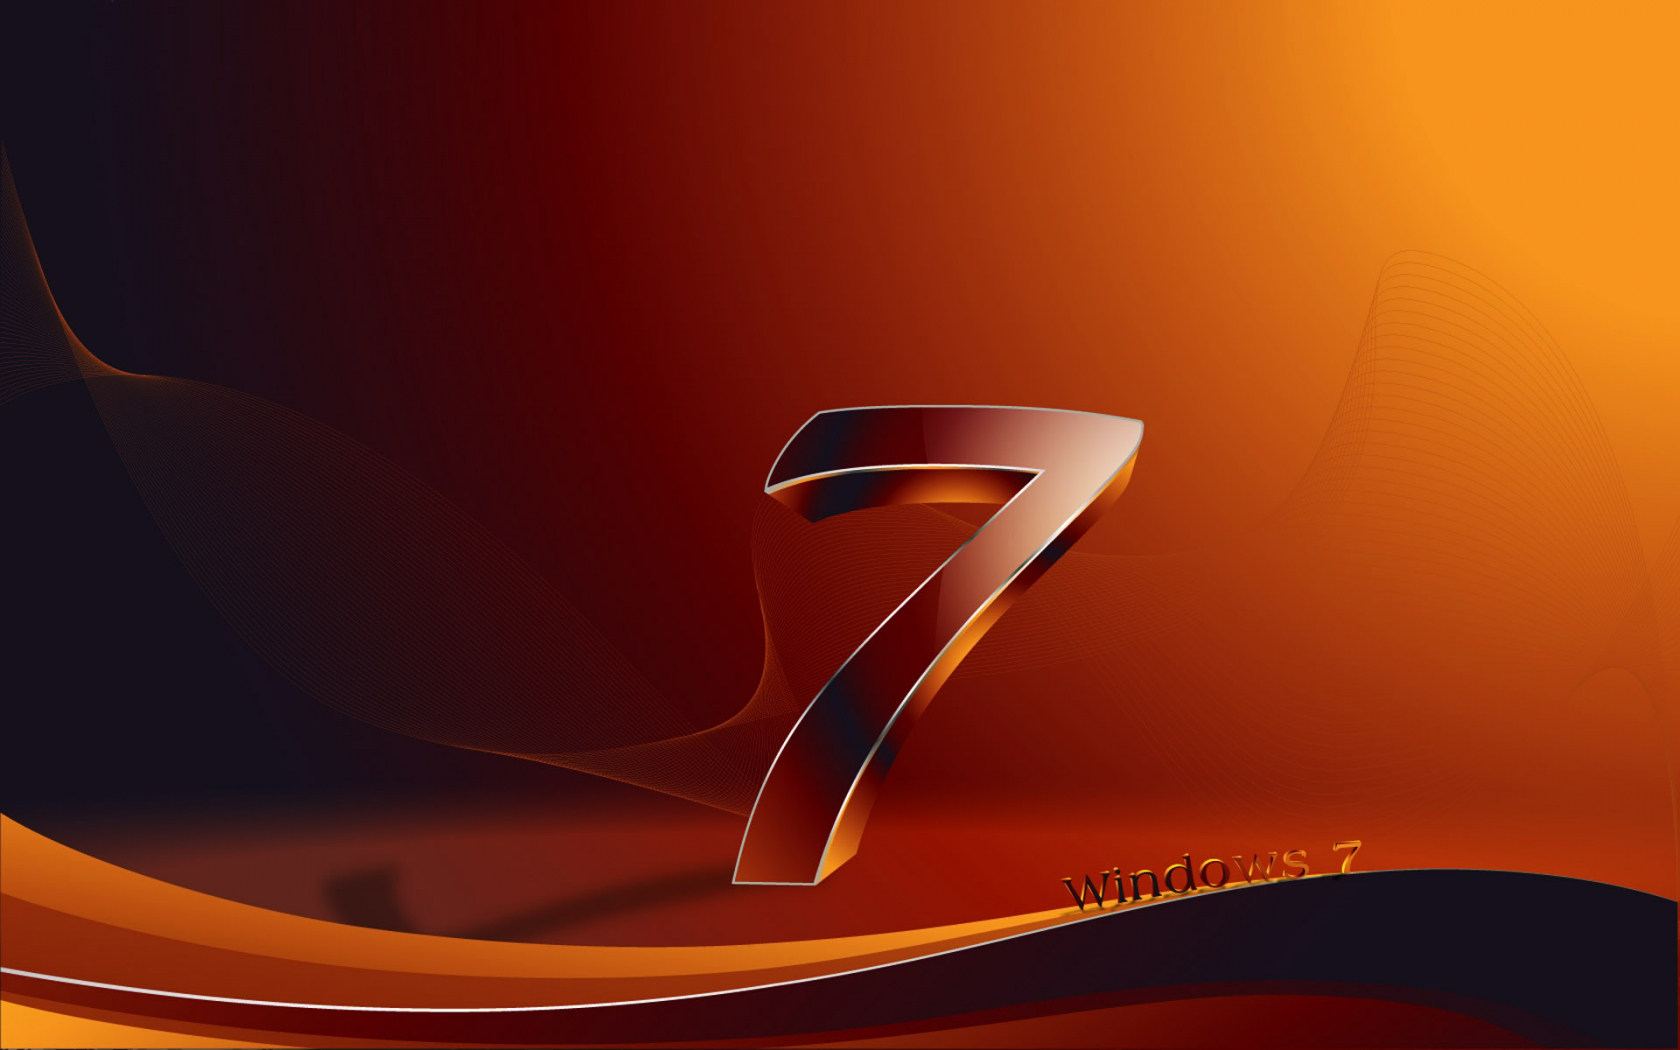 Free Download 3d Windows 7 Wallpapers Hd Wallpapers 1920x1200